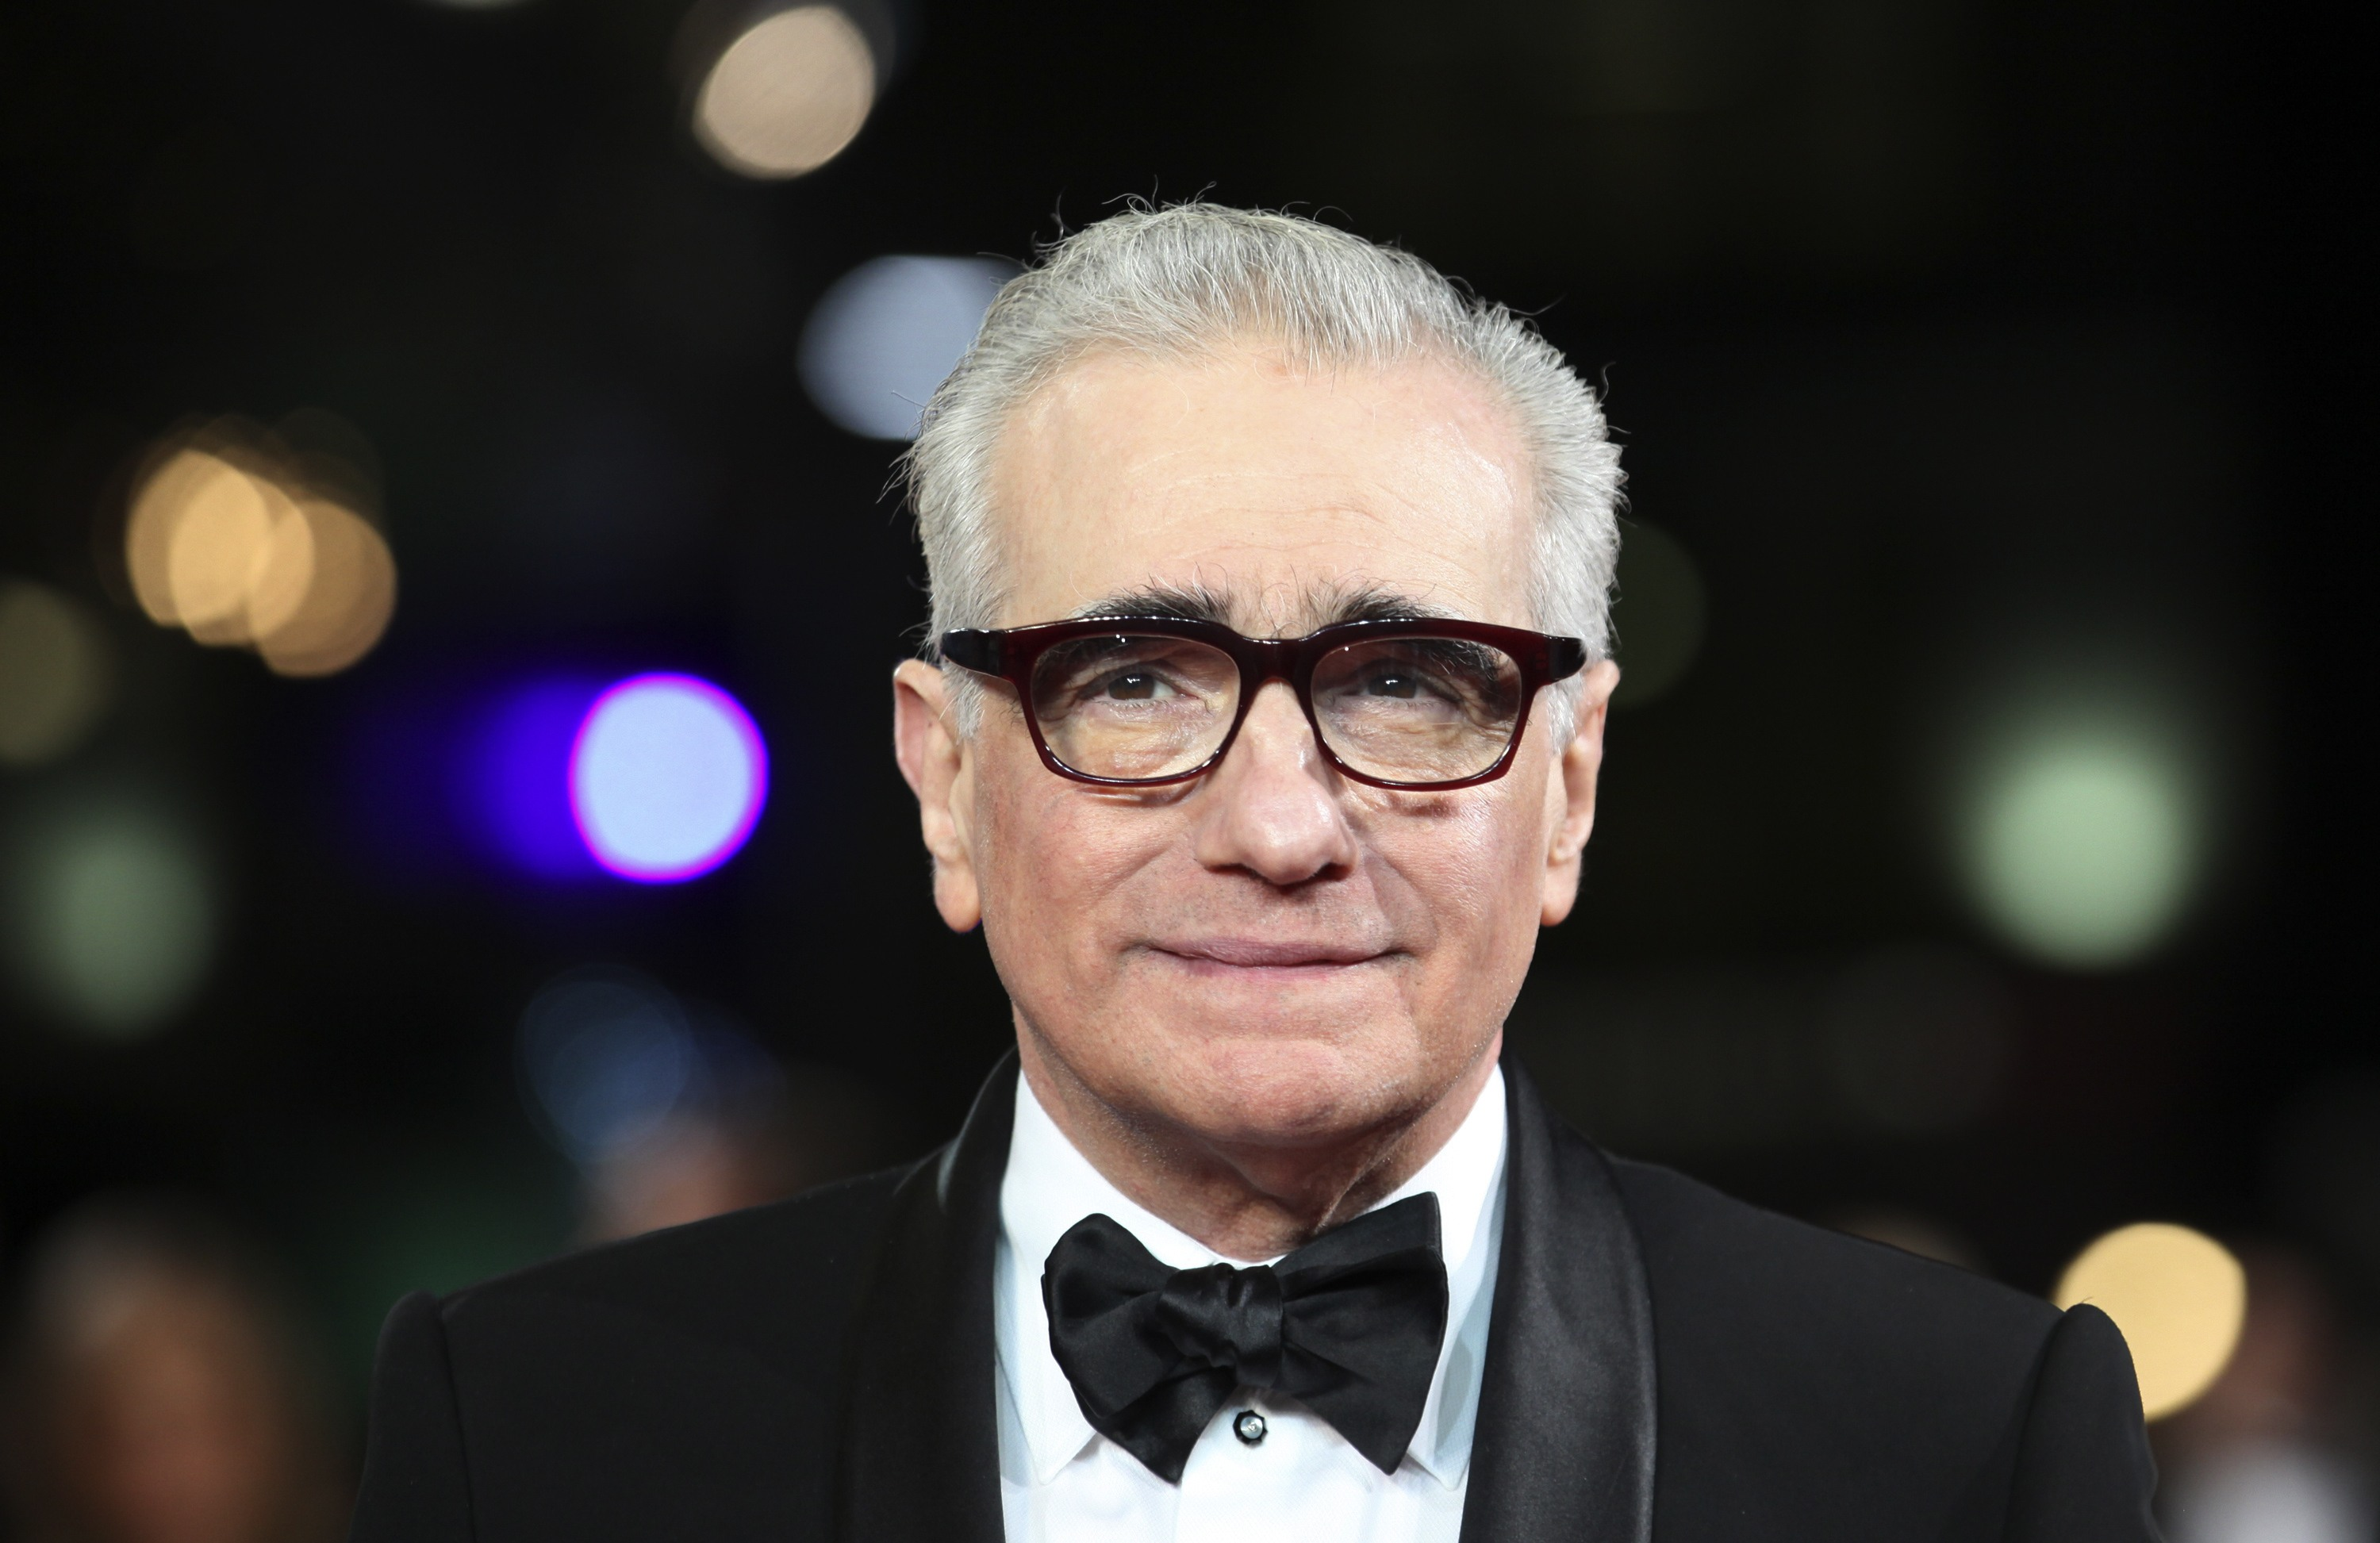 Director Martin Scorsese arrives at The Royal Premiere of his film Hugo at the Odeon Leicester Square cinema in London